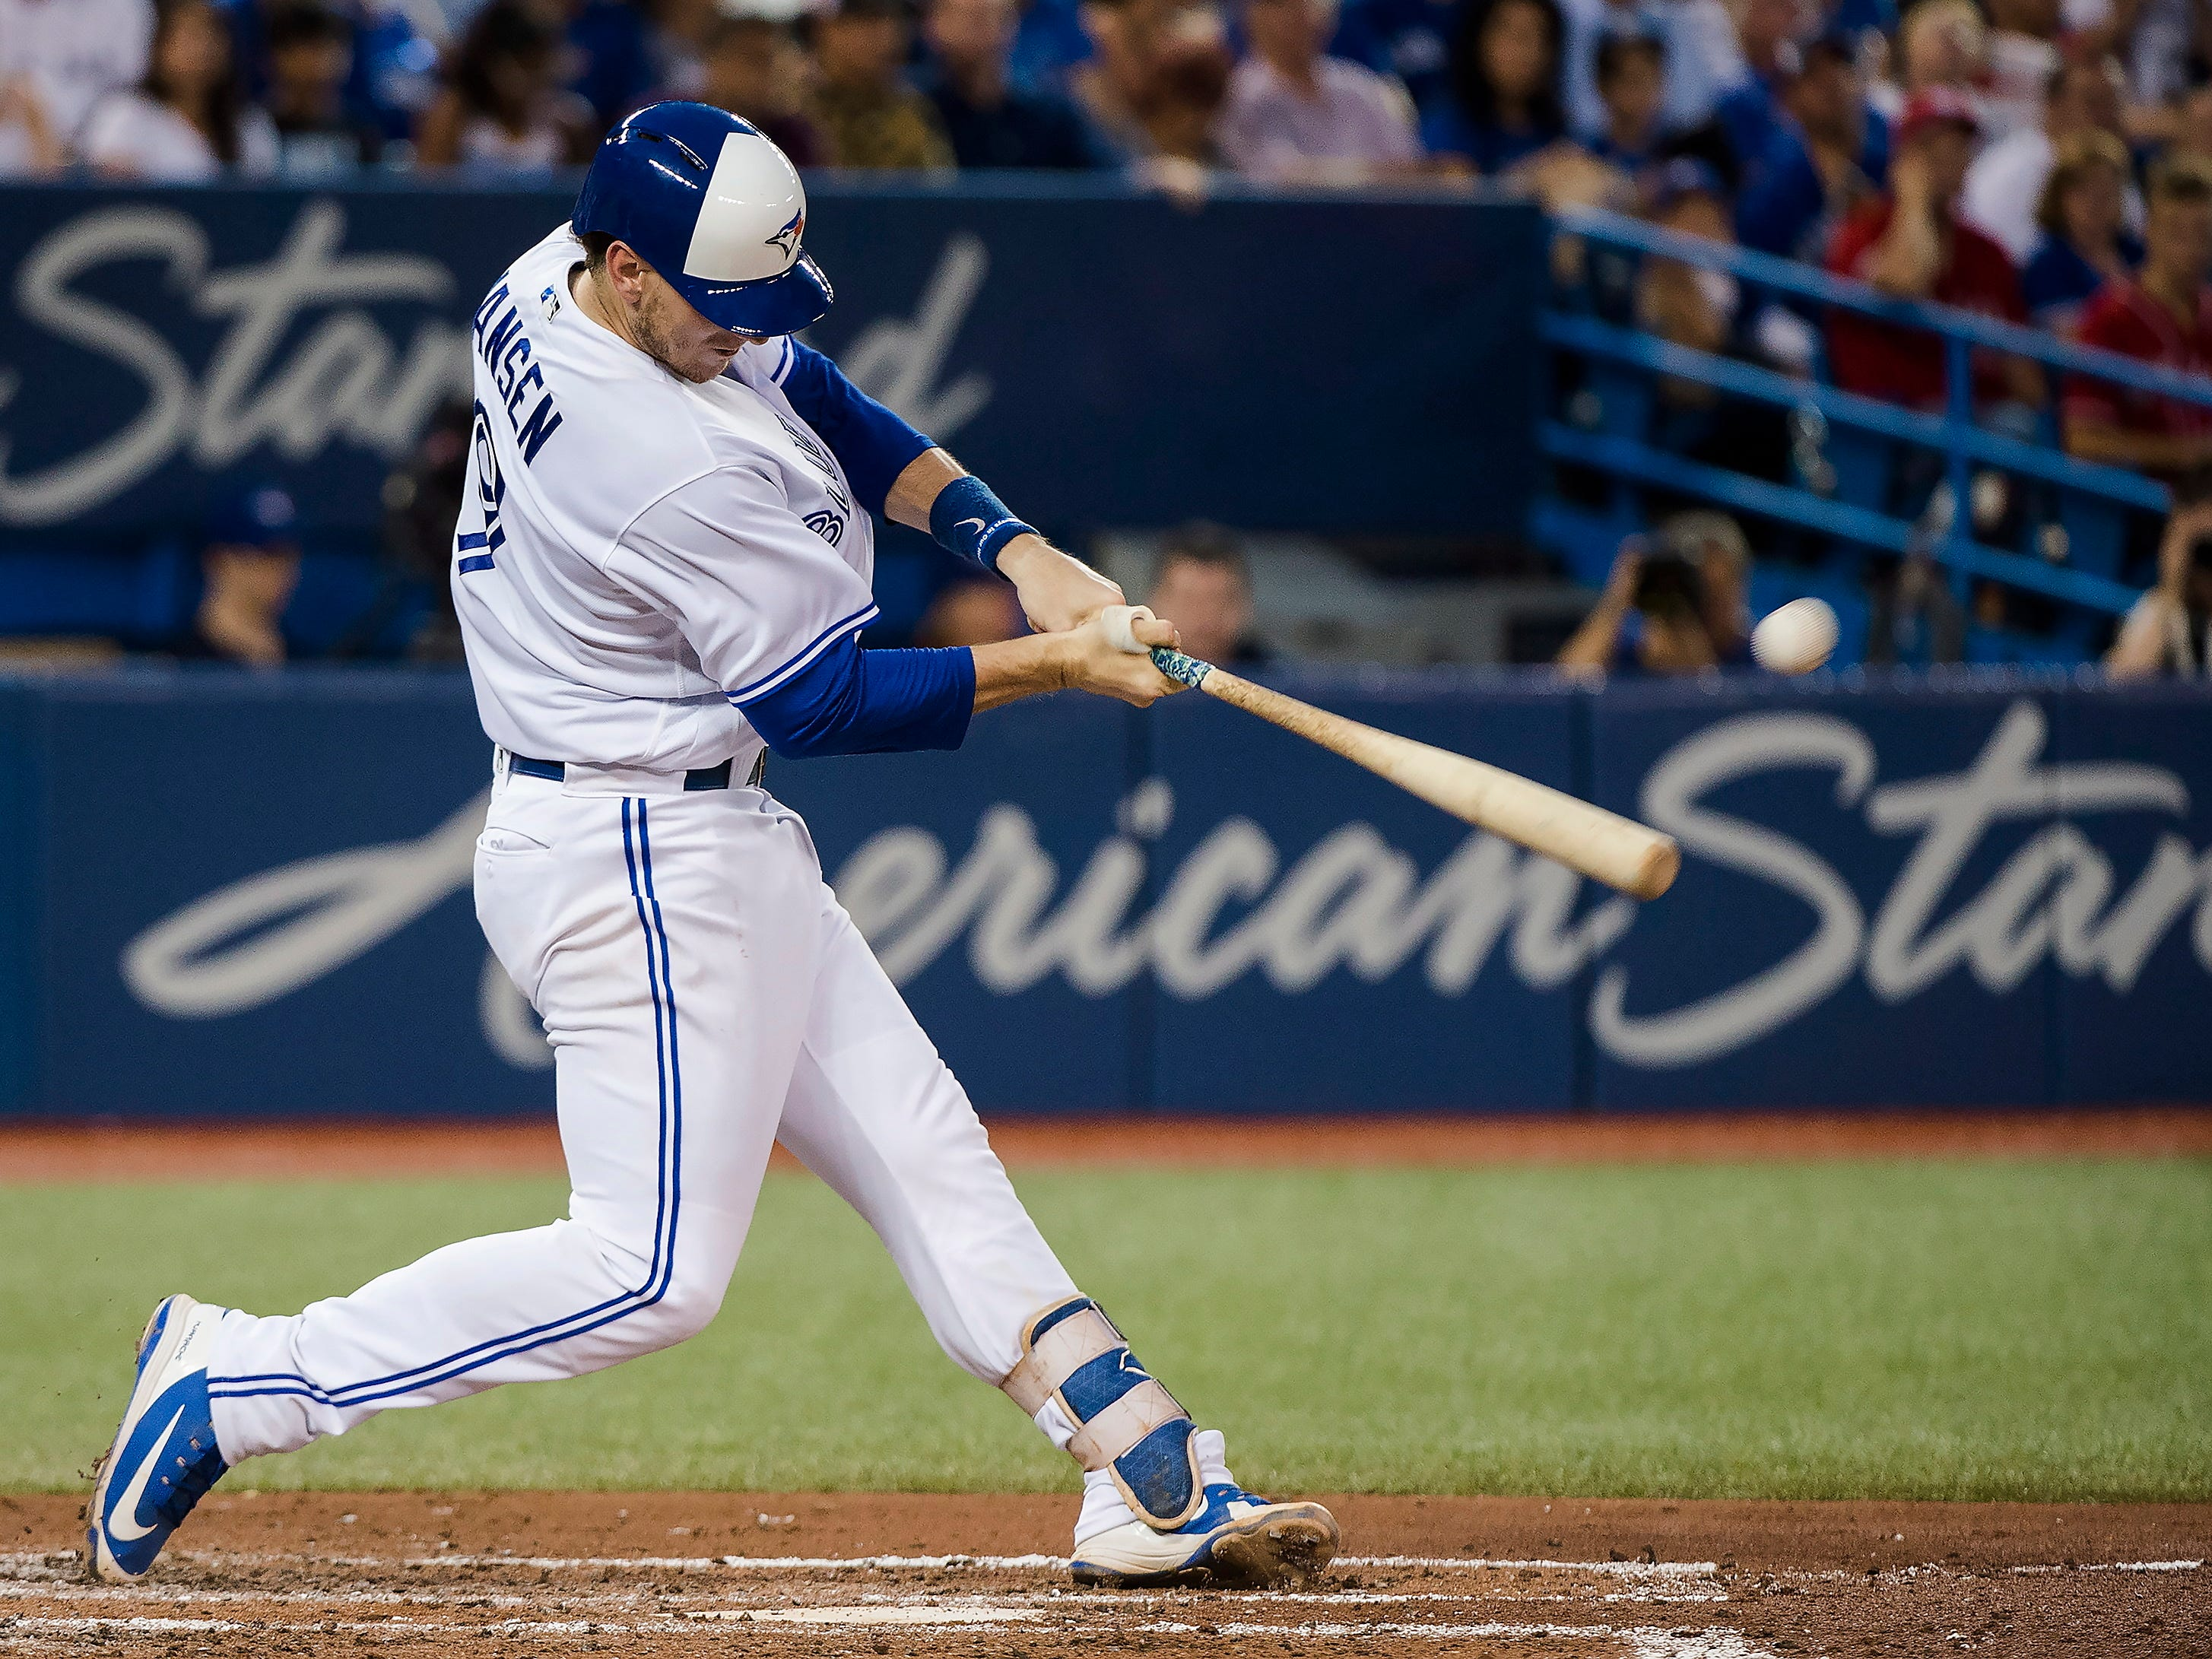 Toronto Blue Jays' Danny Jansen hits a ground-rule double to left field against the Baltimore Orioles during fourth-inning baseball game action in Toronto, Monday, Aug. 20, 2018. (Nathan Denette/The Canadian Press via AP)